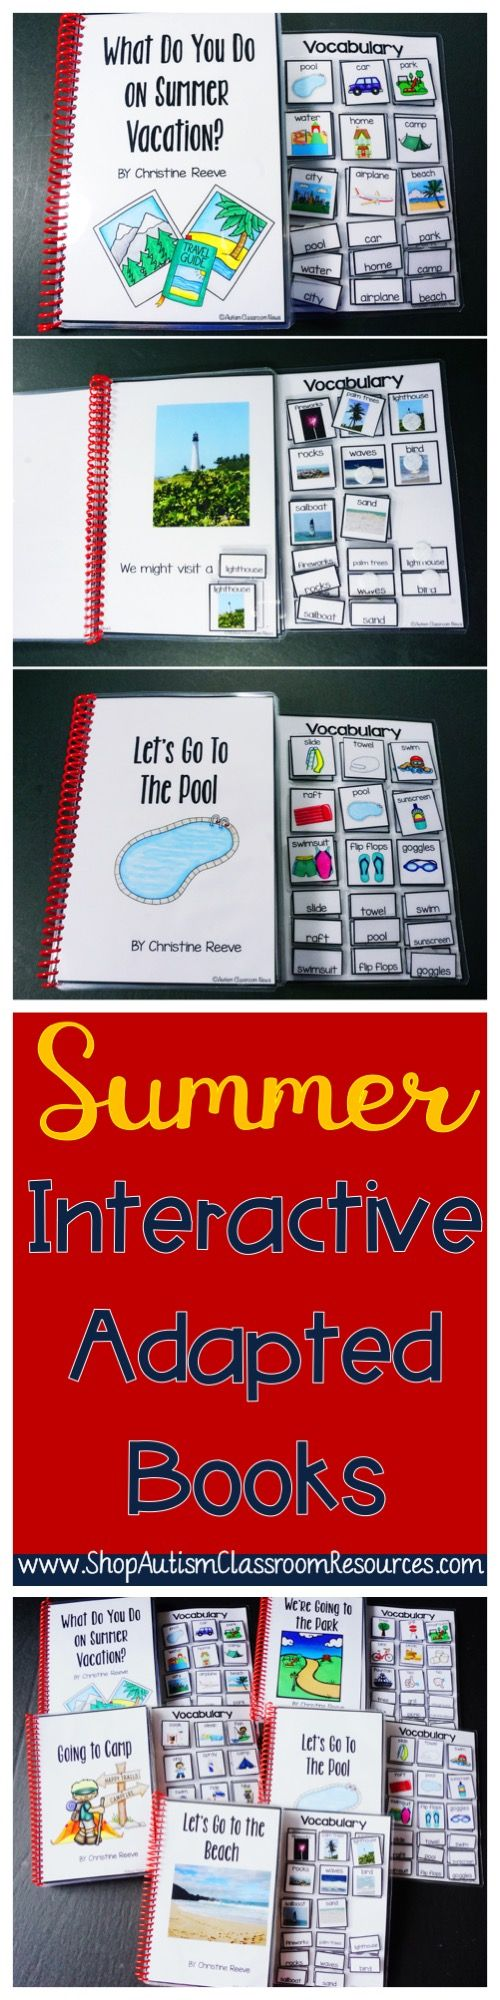 Interactive books designed for early childhood and students in special education.  I love them for morning meeting, story time, and functional reading.  Great summer vocabulary with words and pictures. Even nonreaders can read using these books and can be engaged in literacy activities.